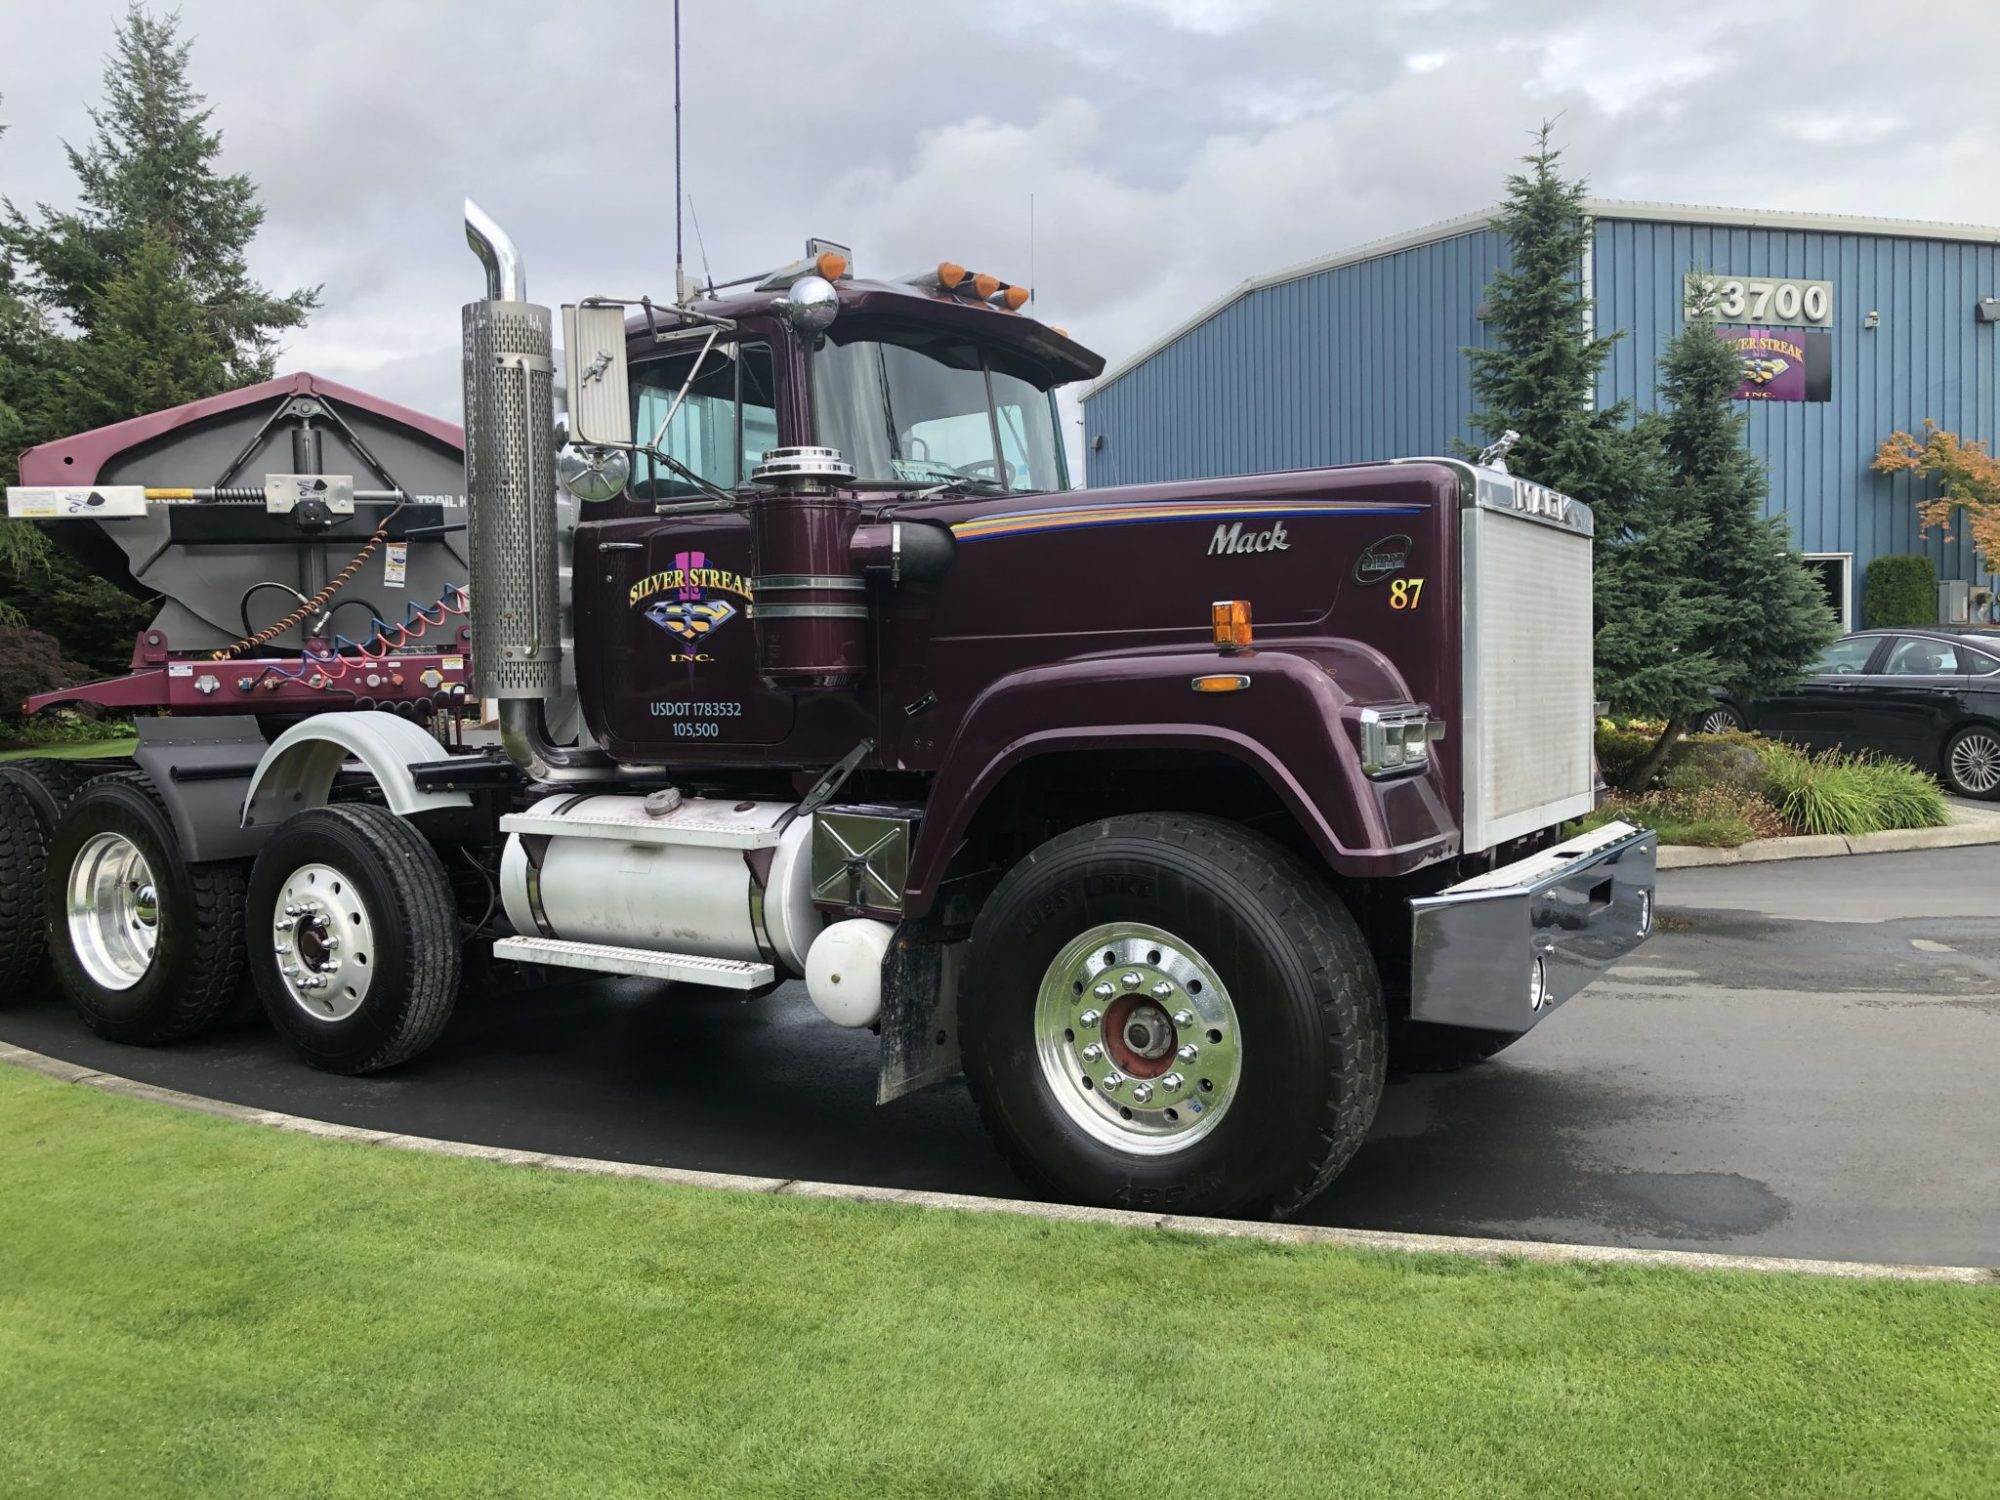 Mack building presence in the west - Truck News